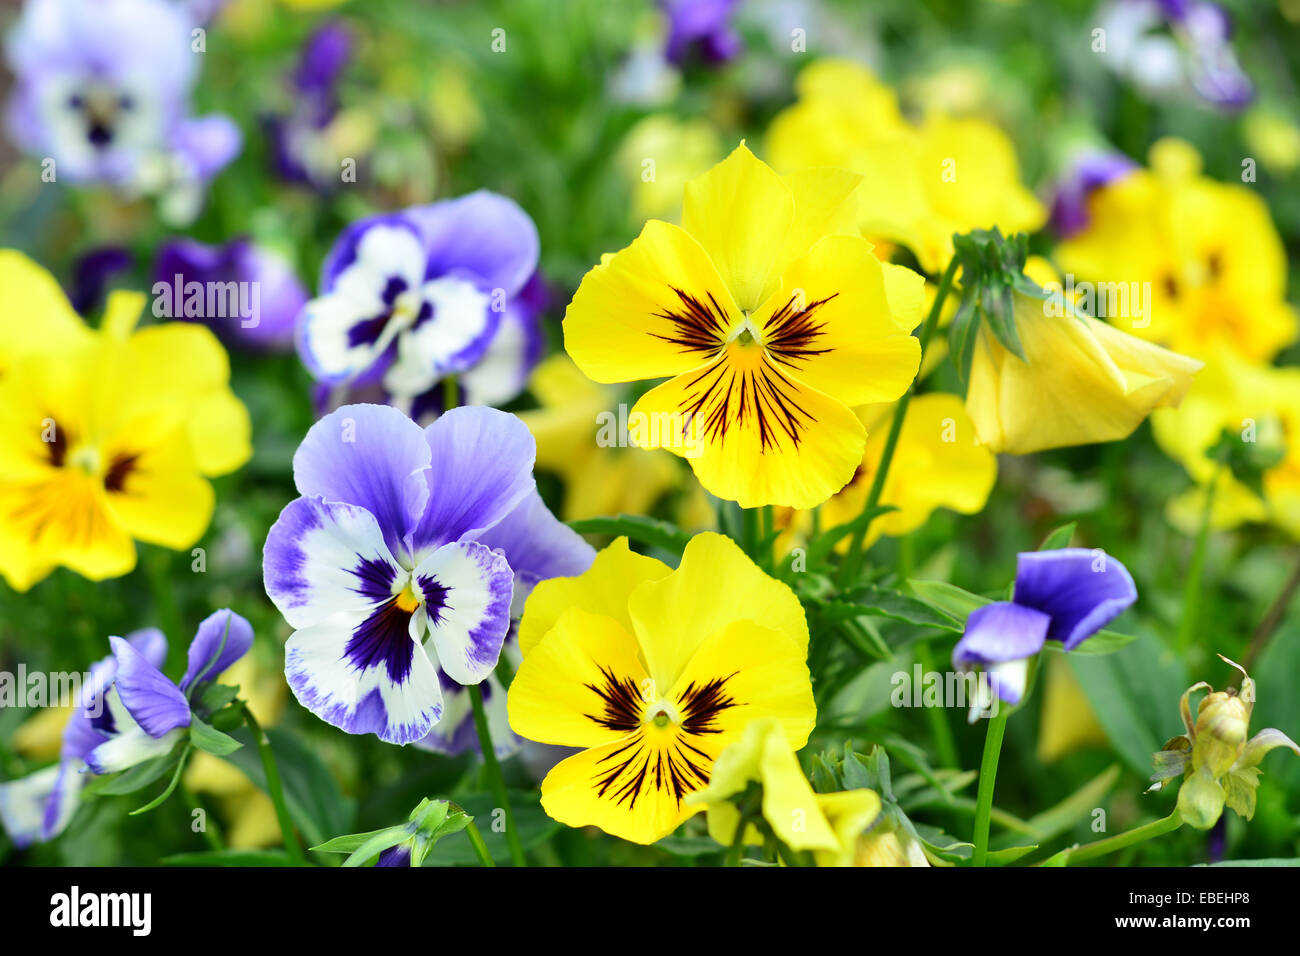 Flowers pansy - Stock Image